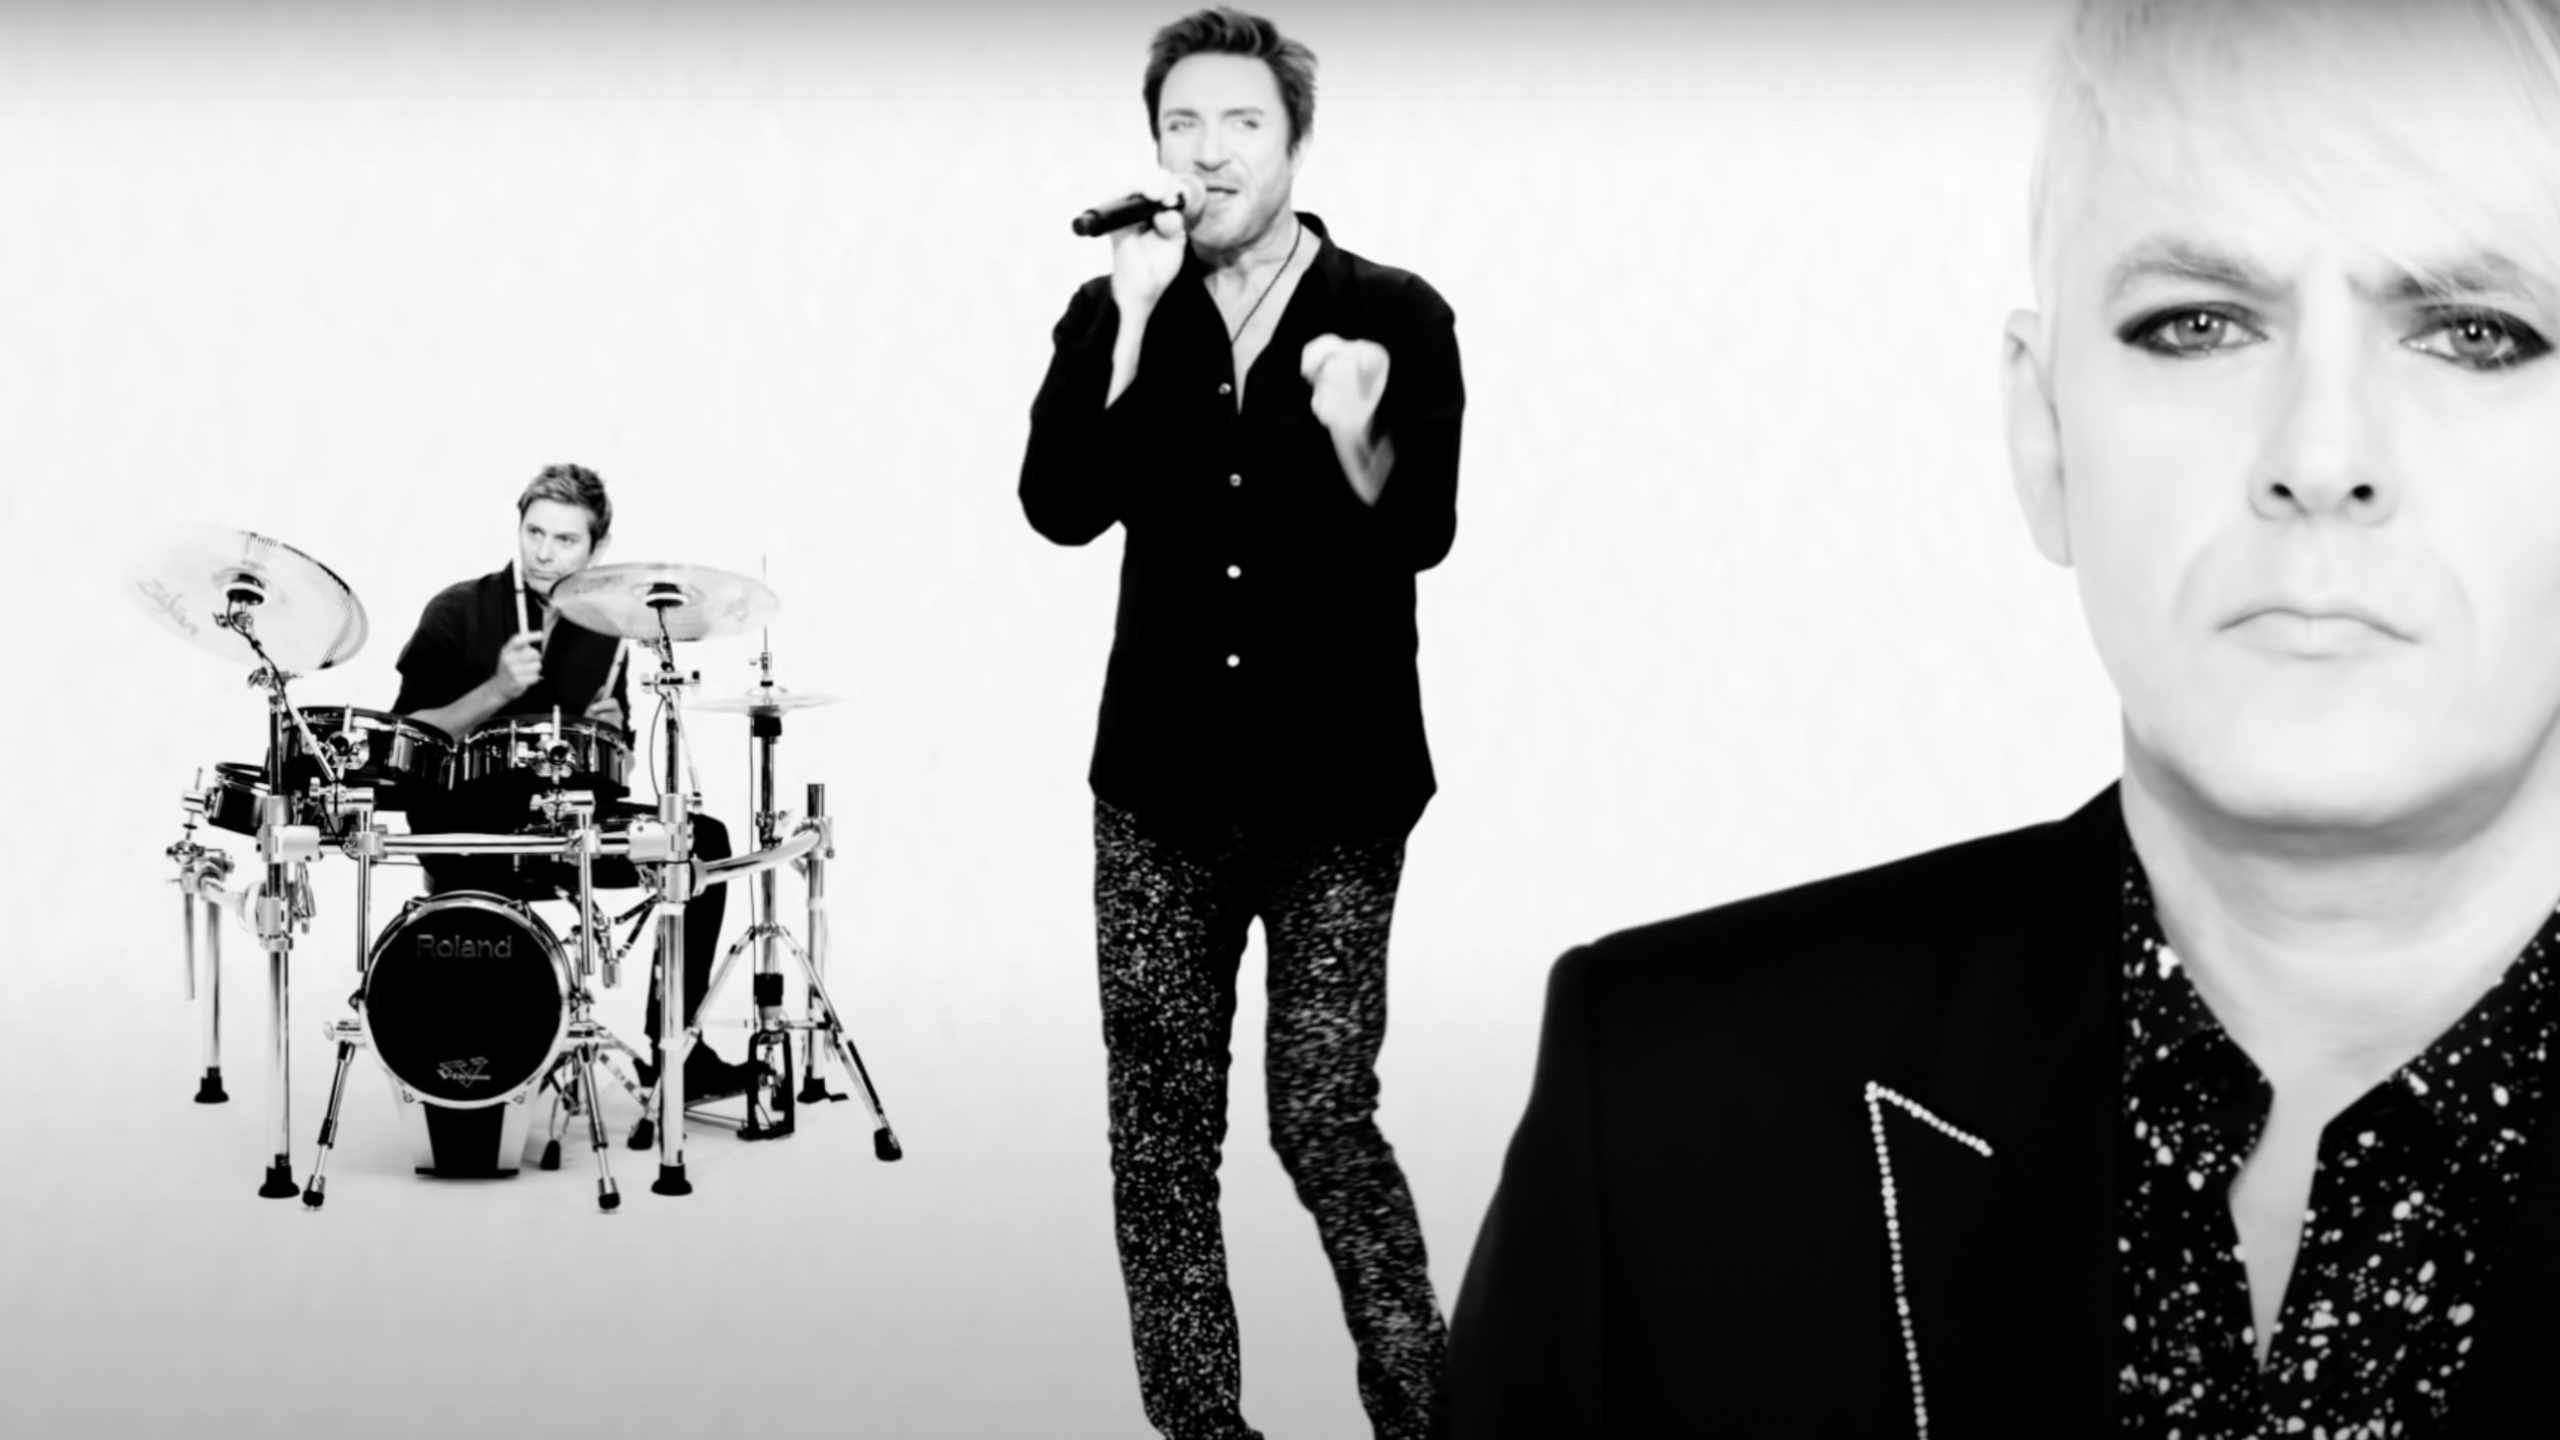 Duran Duran returning with new single 'Invisible' in May, album late 2021 - Retro Pop